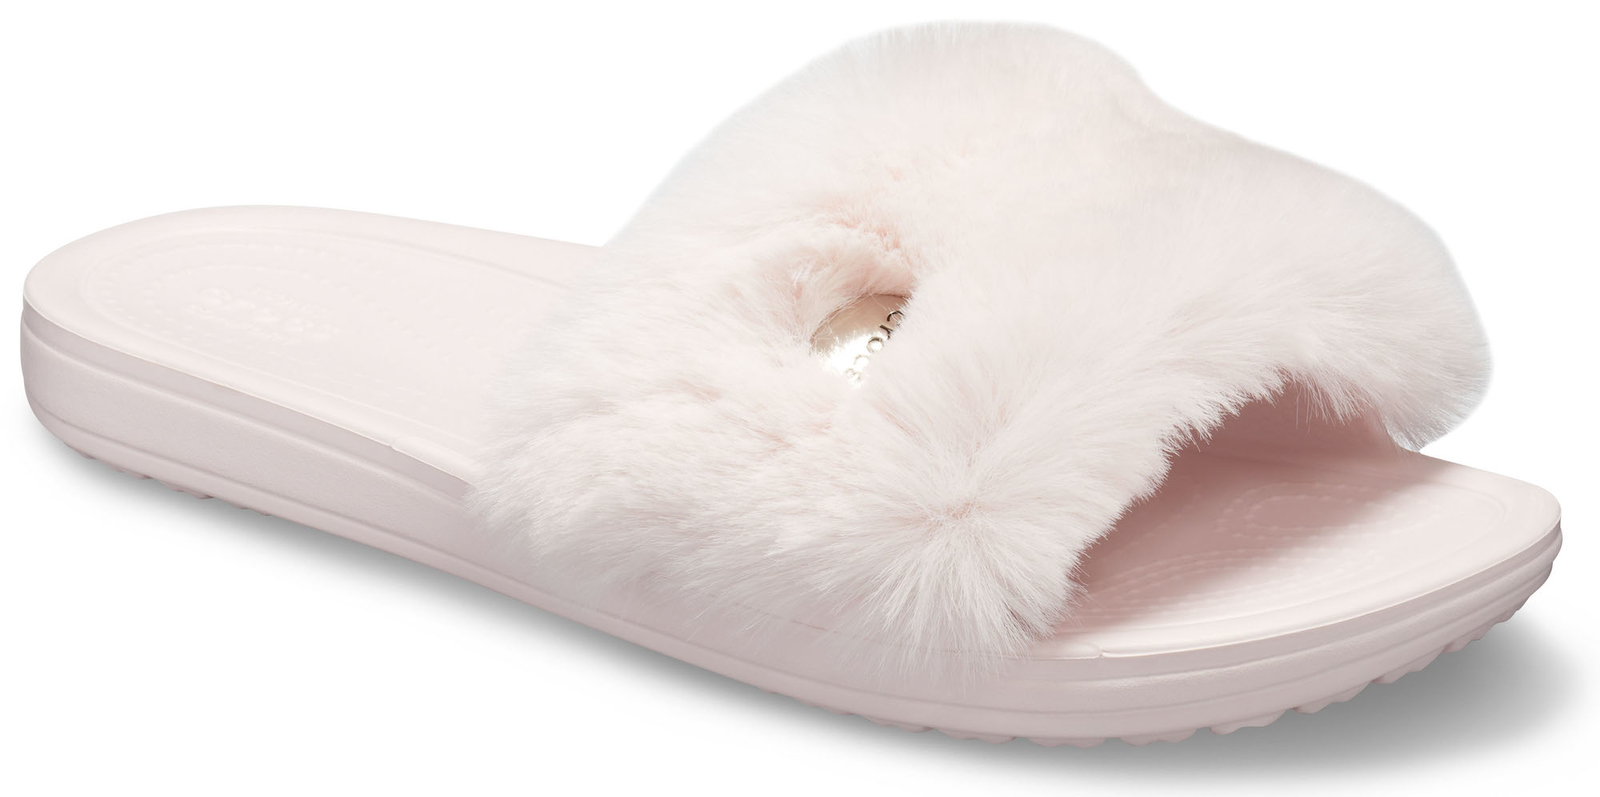 Crocs powdery slippers Crocs Sloane Luxe Slide Barely Pink